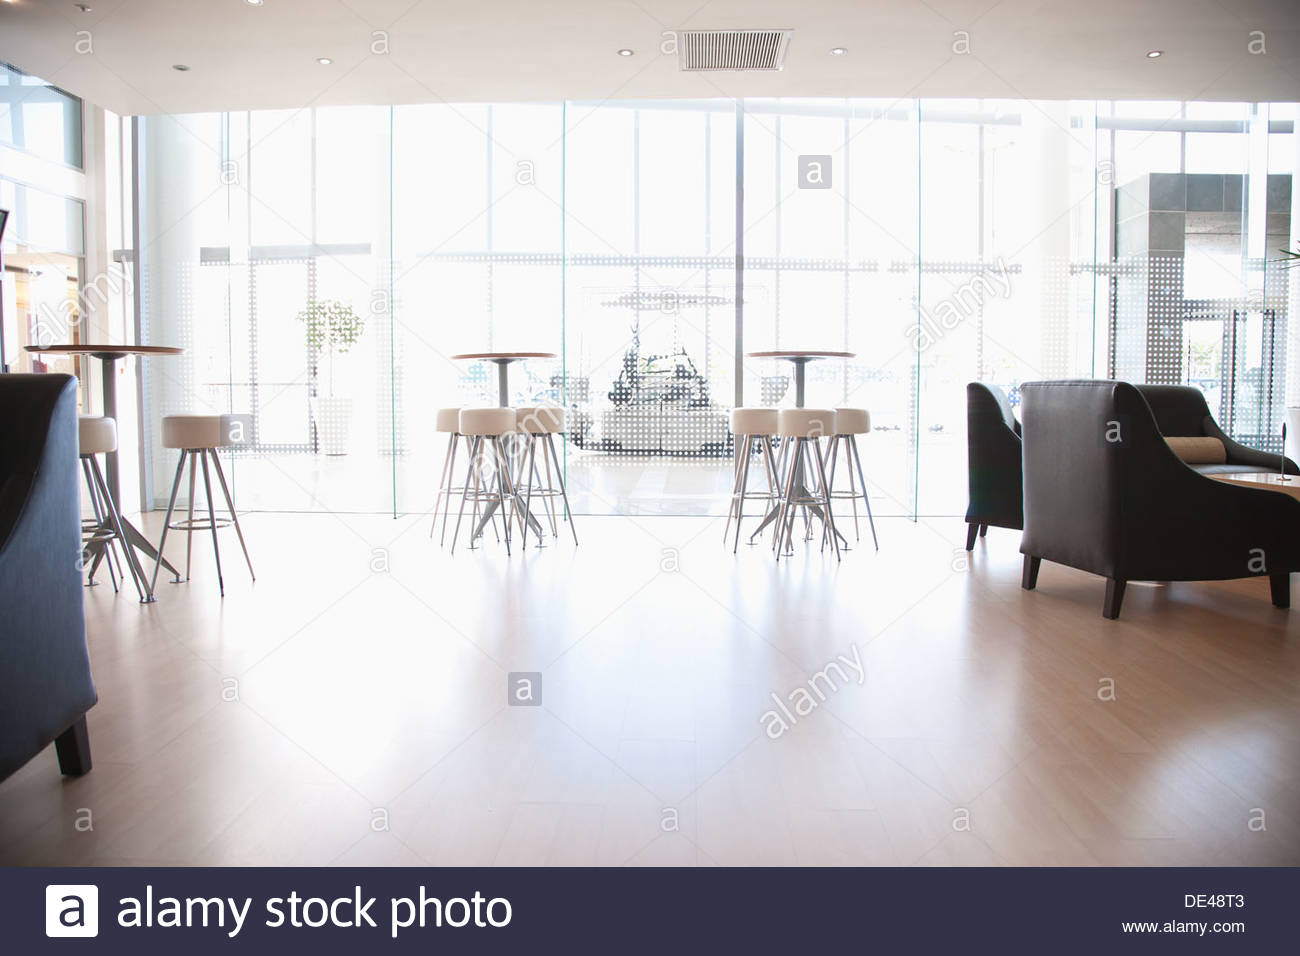 Tables and chairs in cafeteria - Stock Image